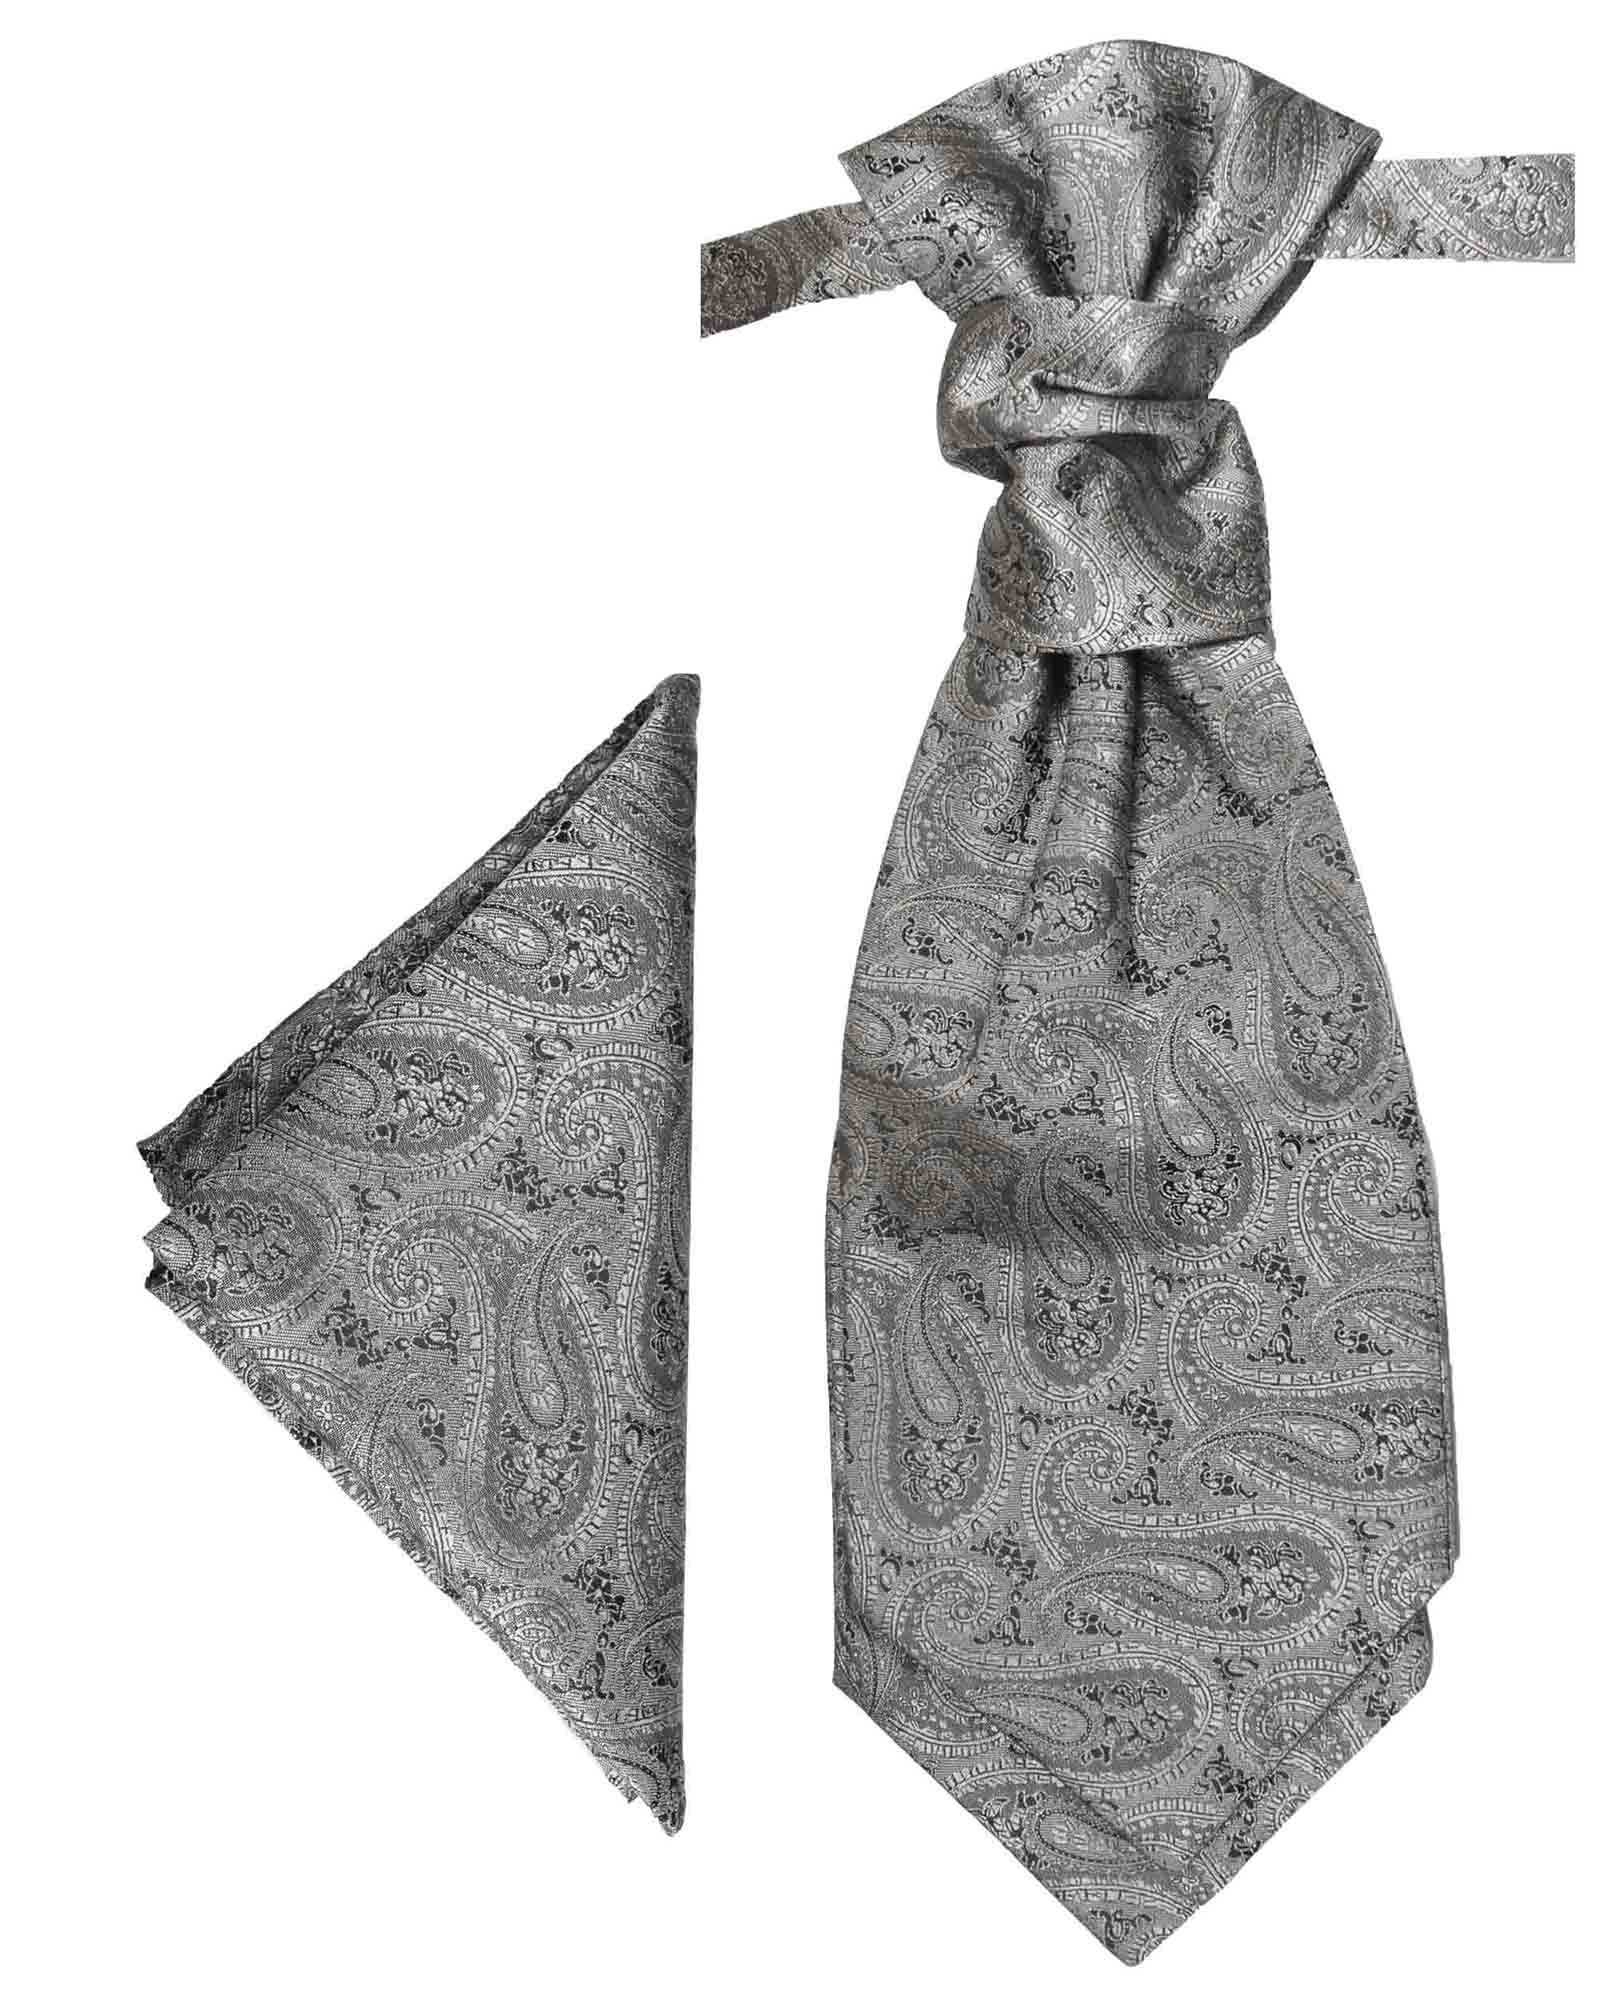 Cravat Ascot Black /& Silver Grey with matching hanky.